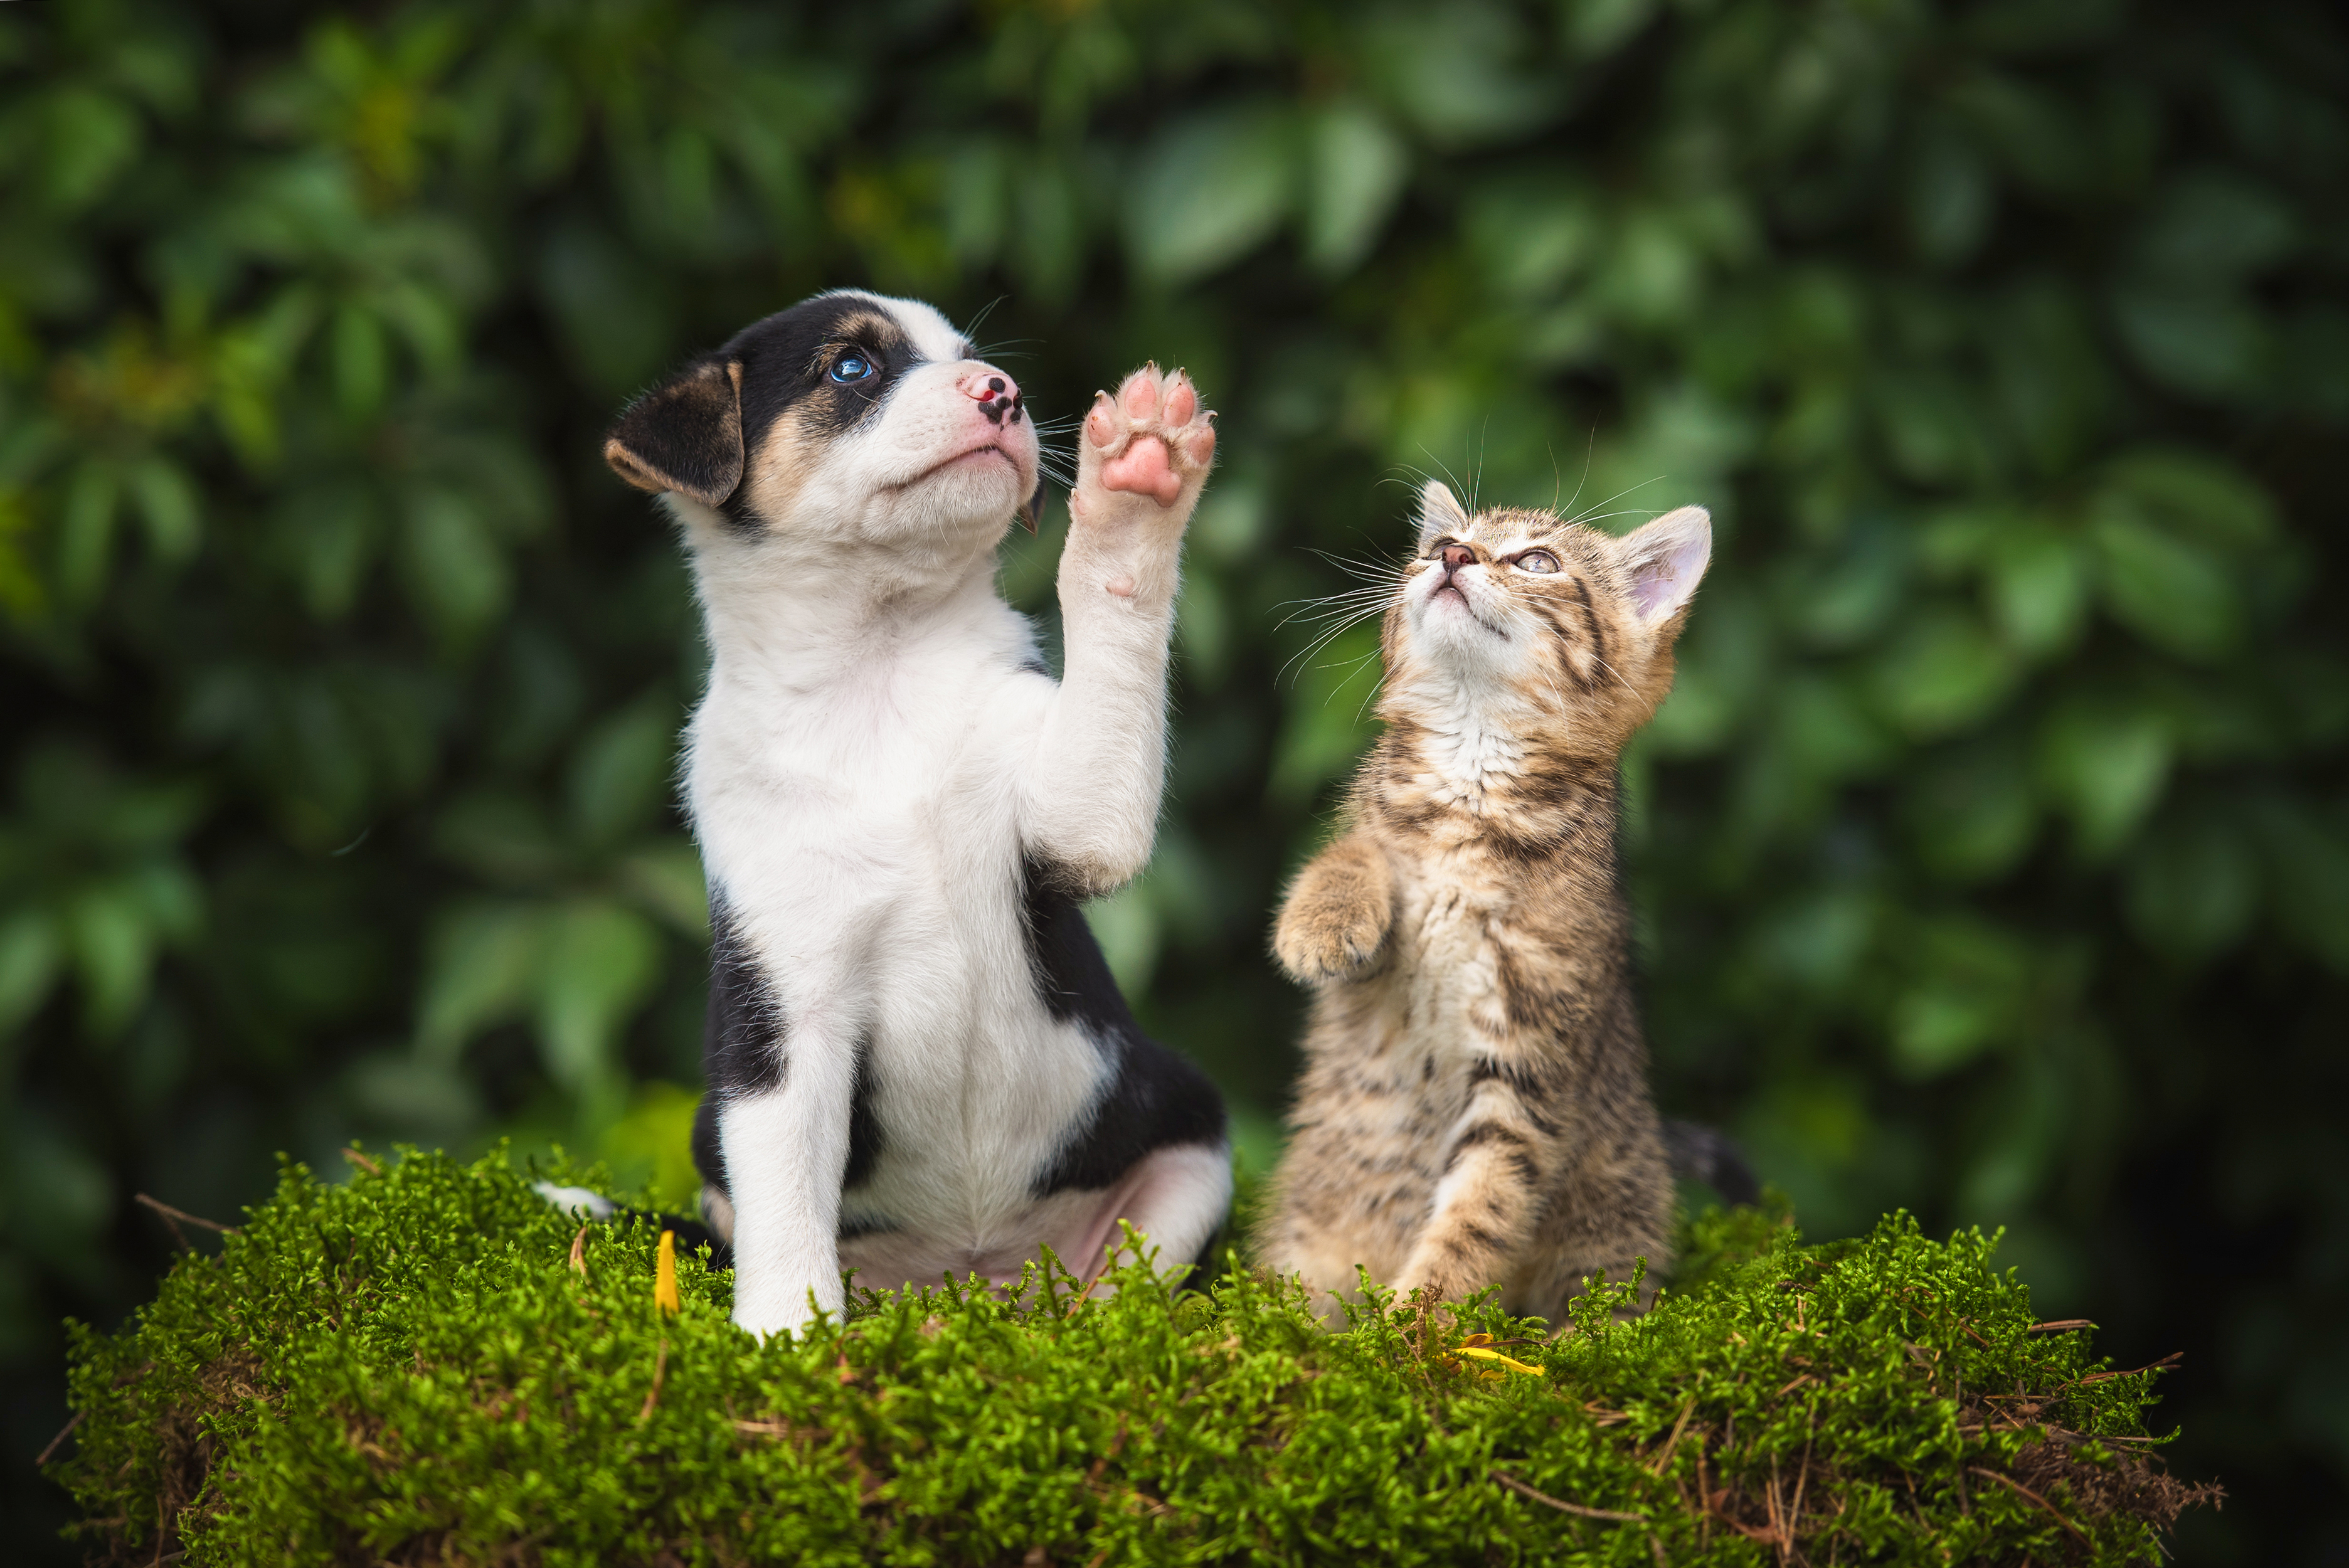 cat and dog images for a pet franchise